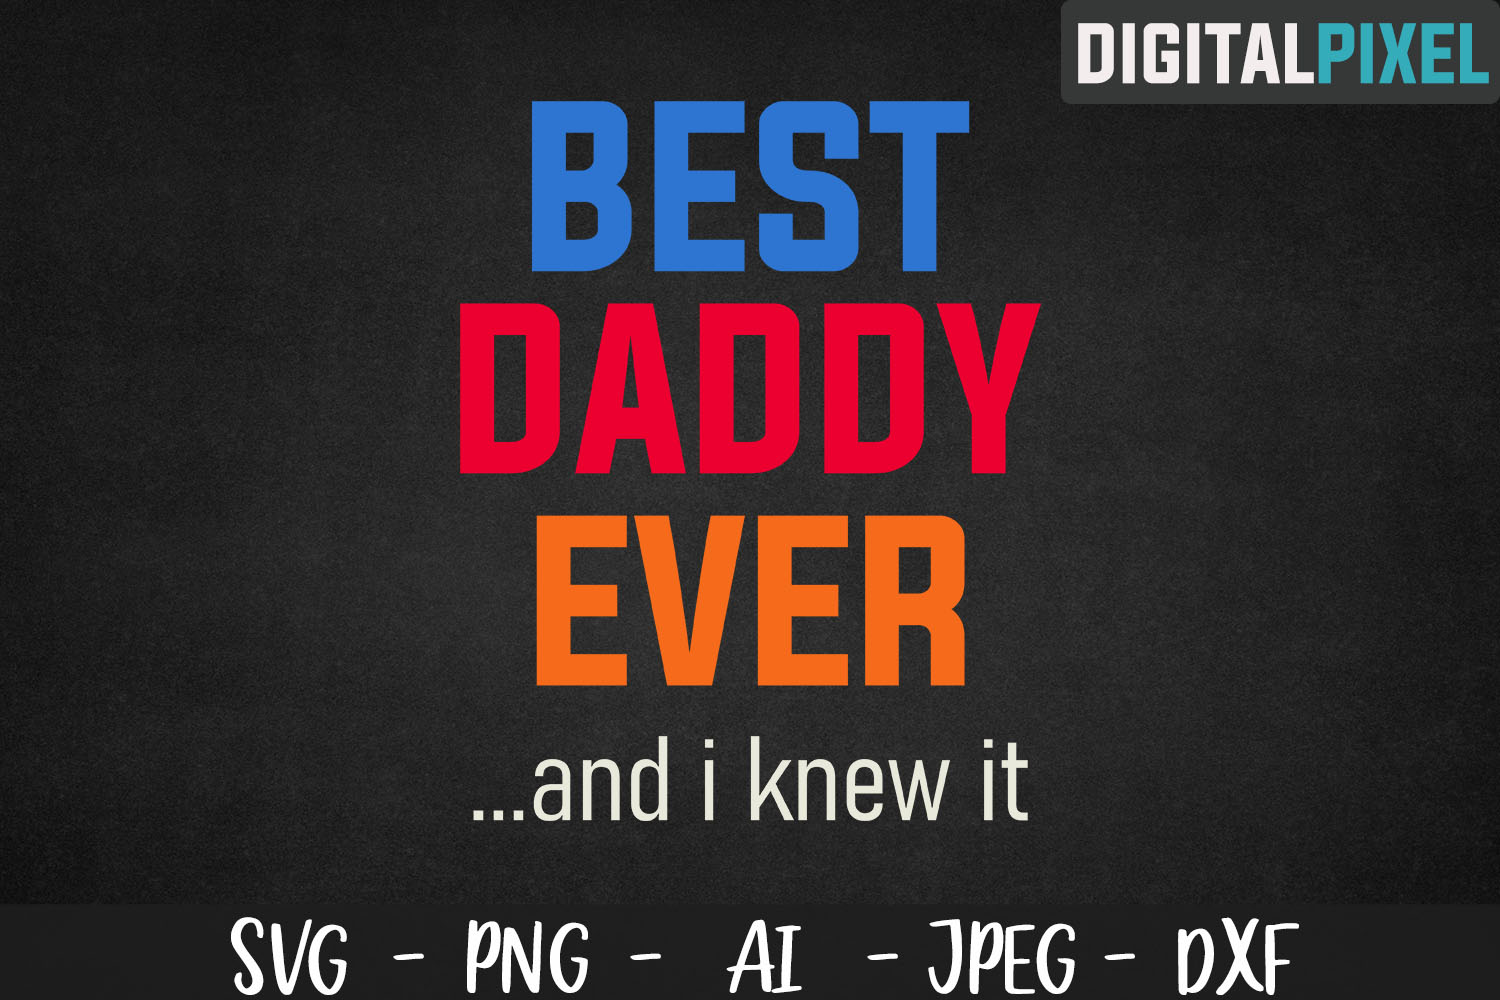 Best Daddy Ever SVG PNG DXF Circut Cut - Crafters SVG example image 2